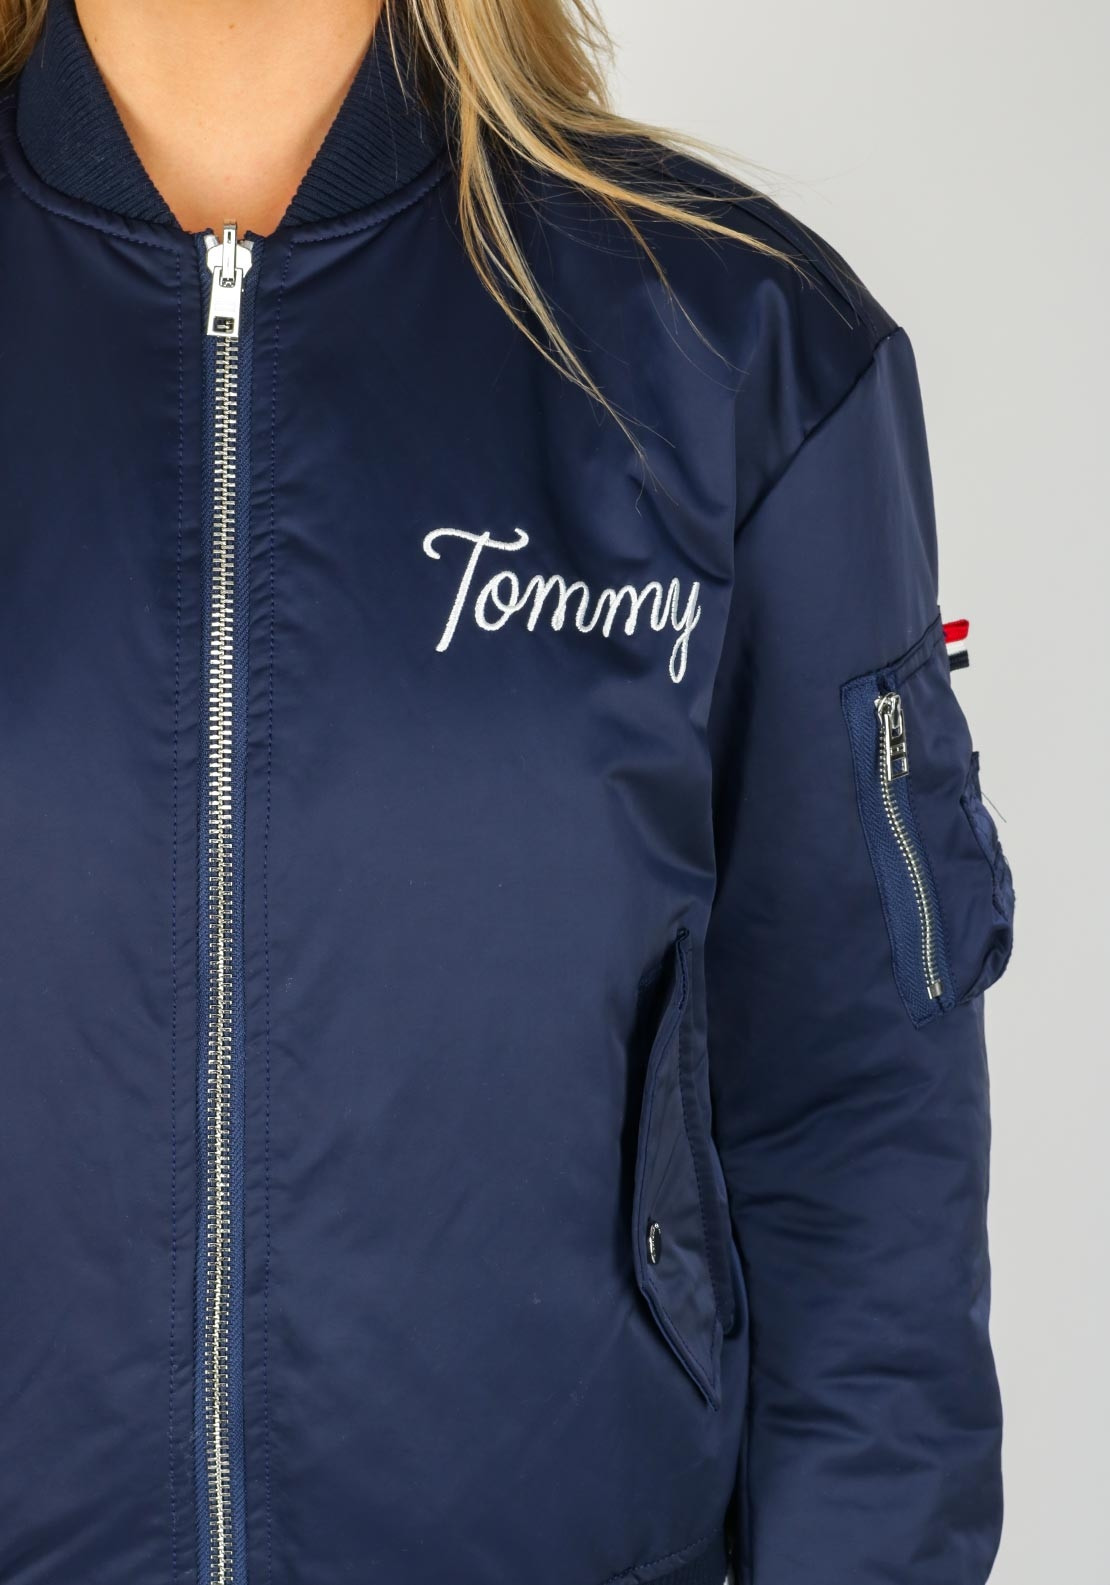 806584b47b107 Tommy Jeans Womens Reversible Bomber Jacket